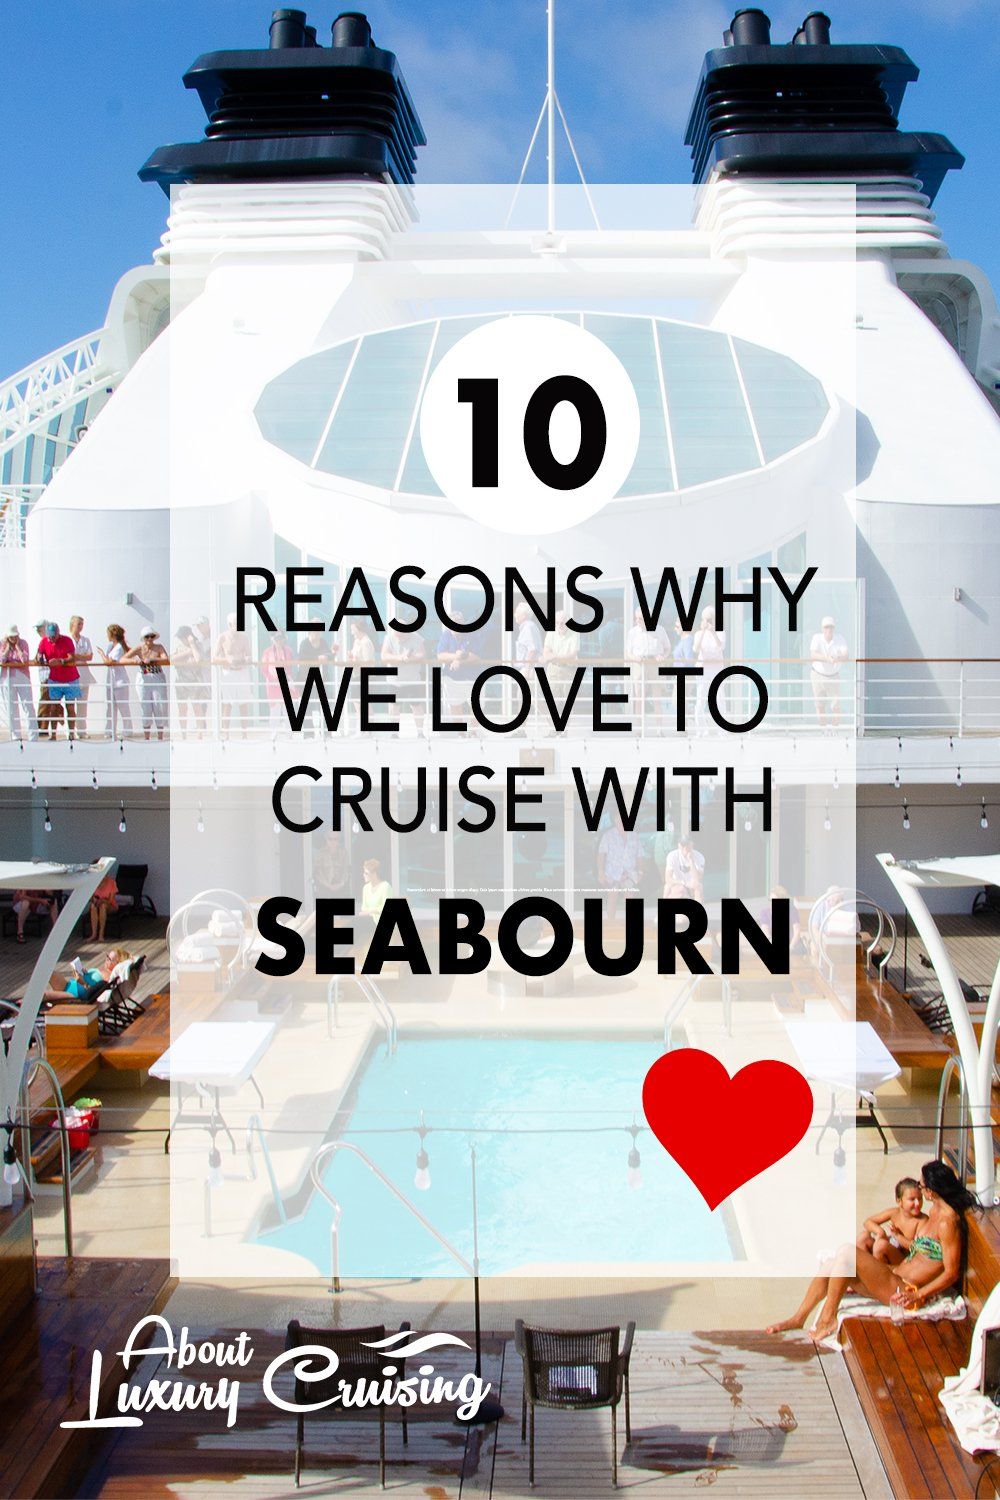 why we love to cruise with Seabourn